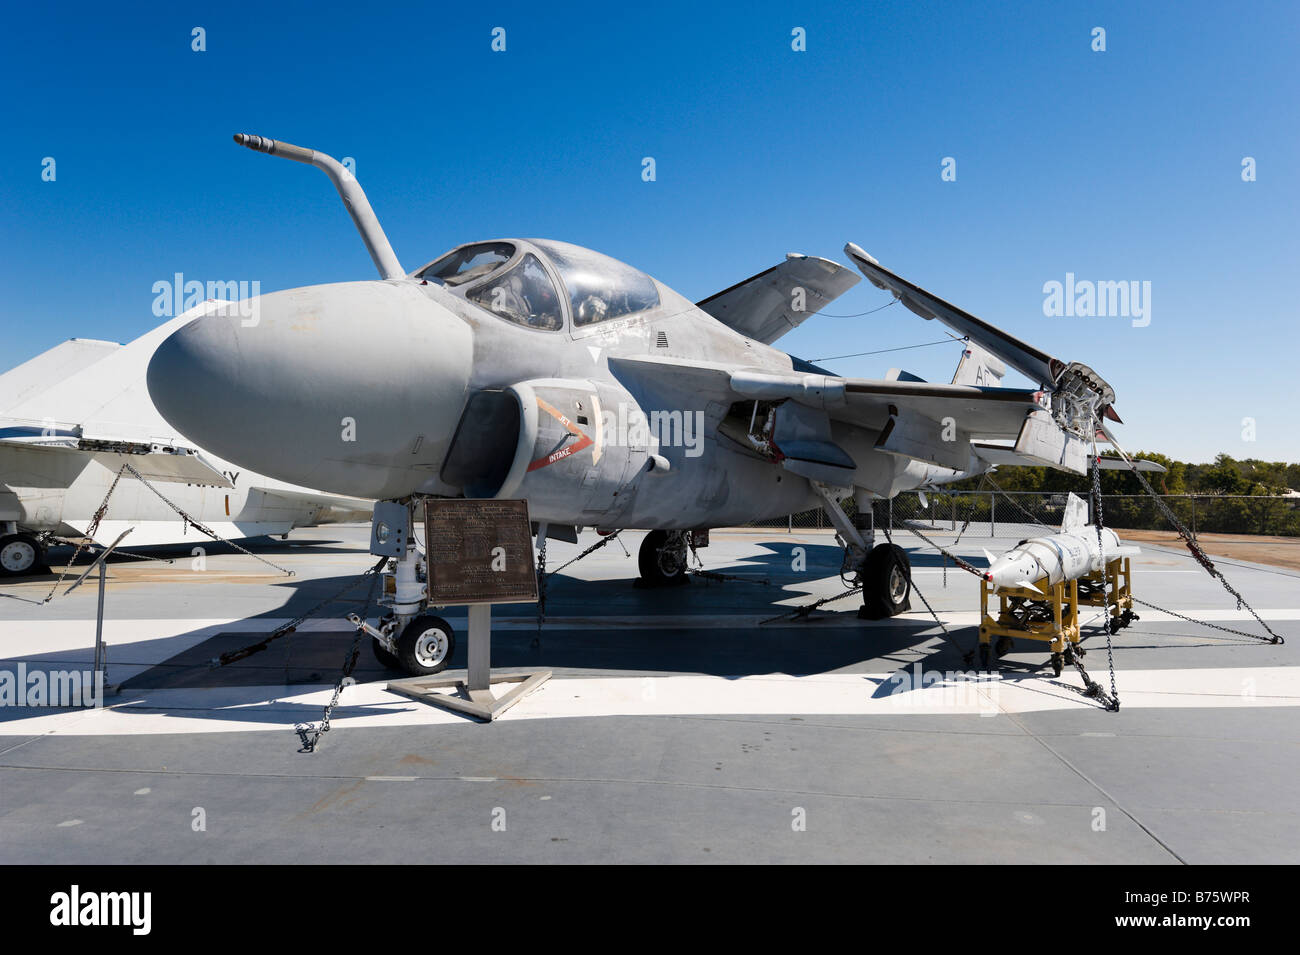 Grumman A-6E Intruder on deck of USS Yorktown aircraft carrier, Patriots Point Naval Museum, Charleston, South Carolina - Stock Image